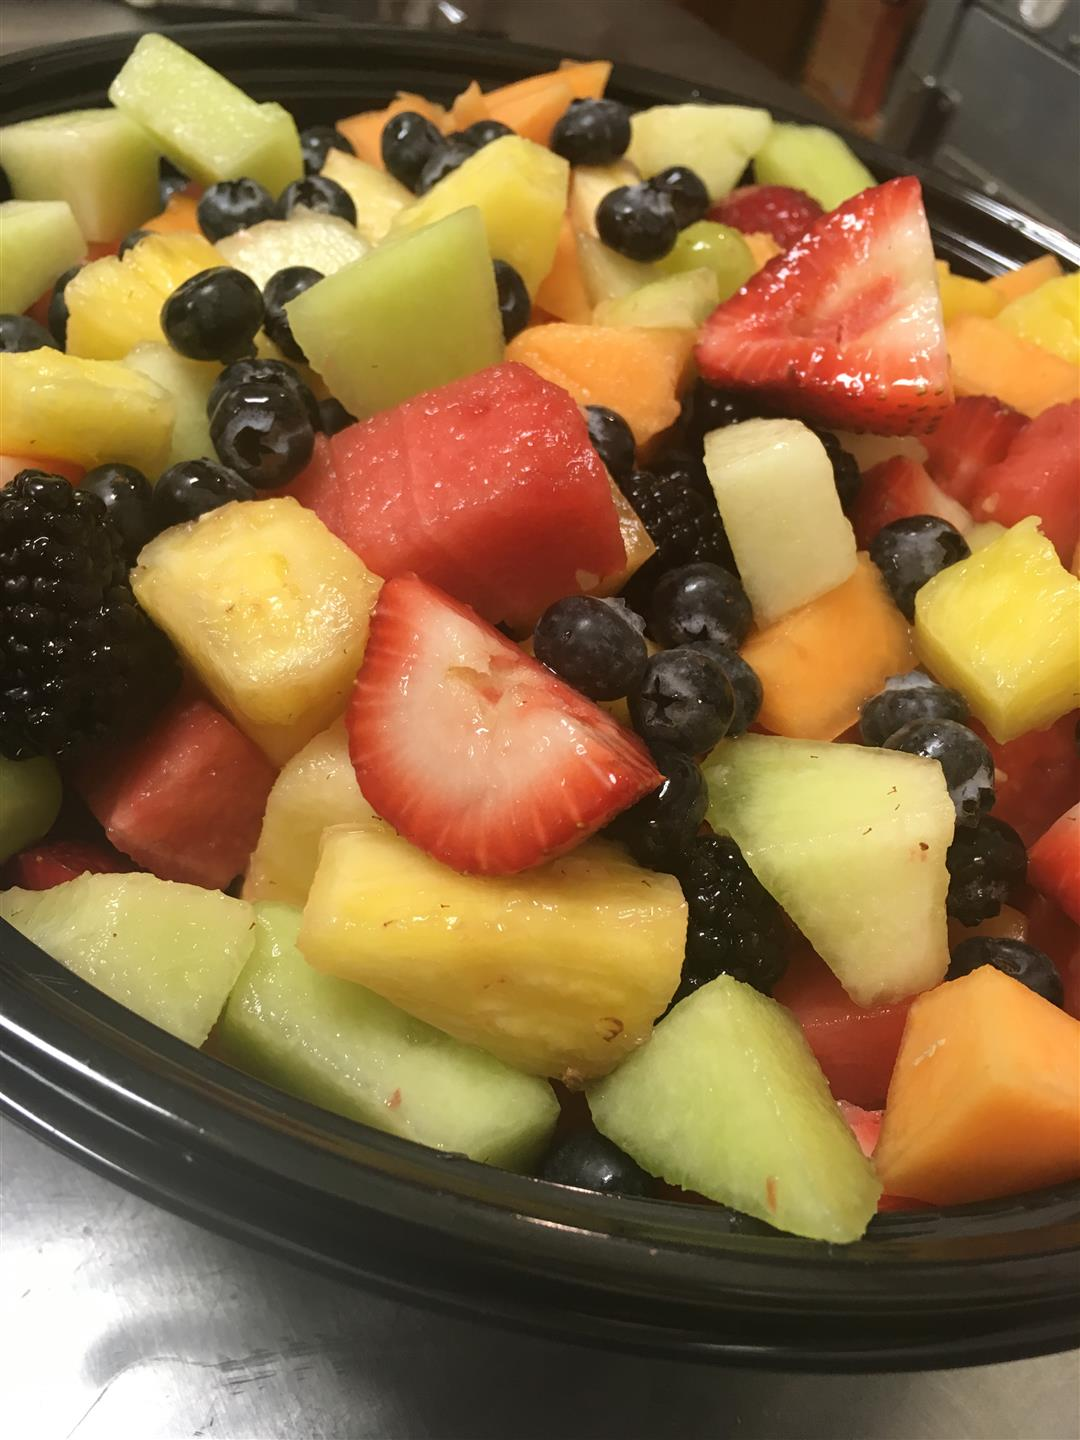 fresh fruit bowl with honeydew, pineapple, strawberries, blueberries, and blackberries